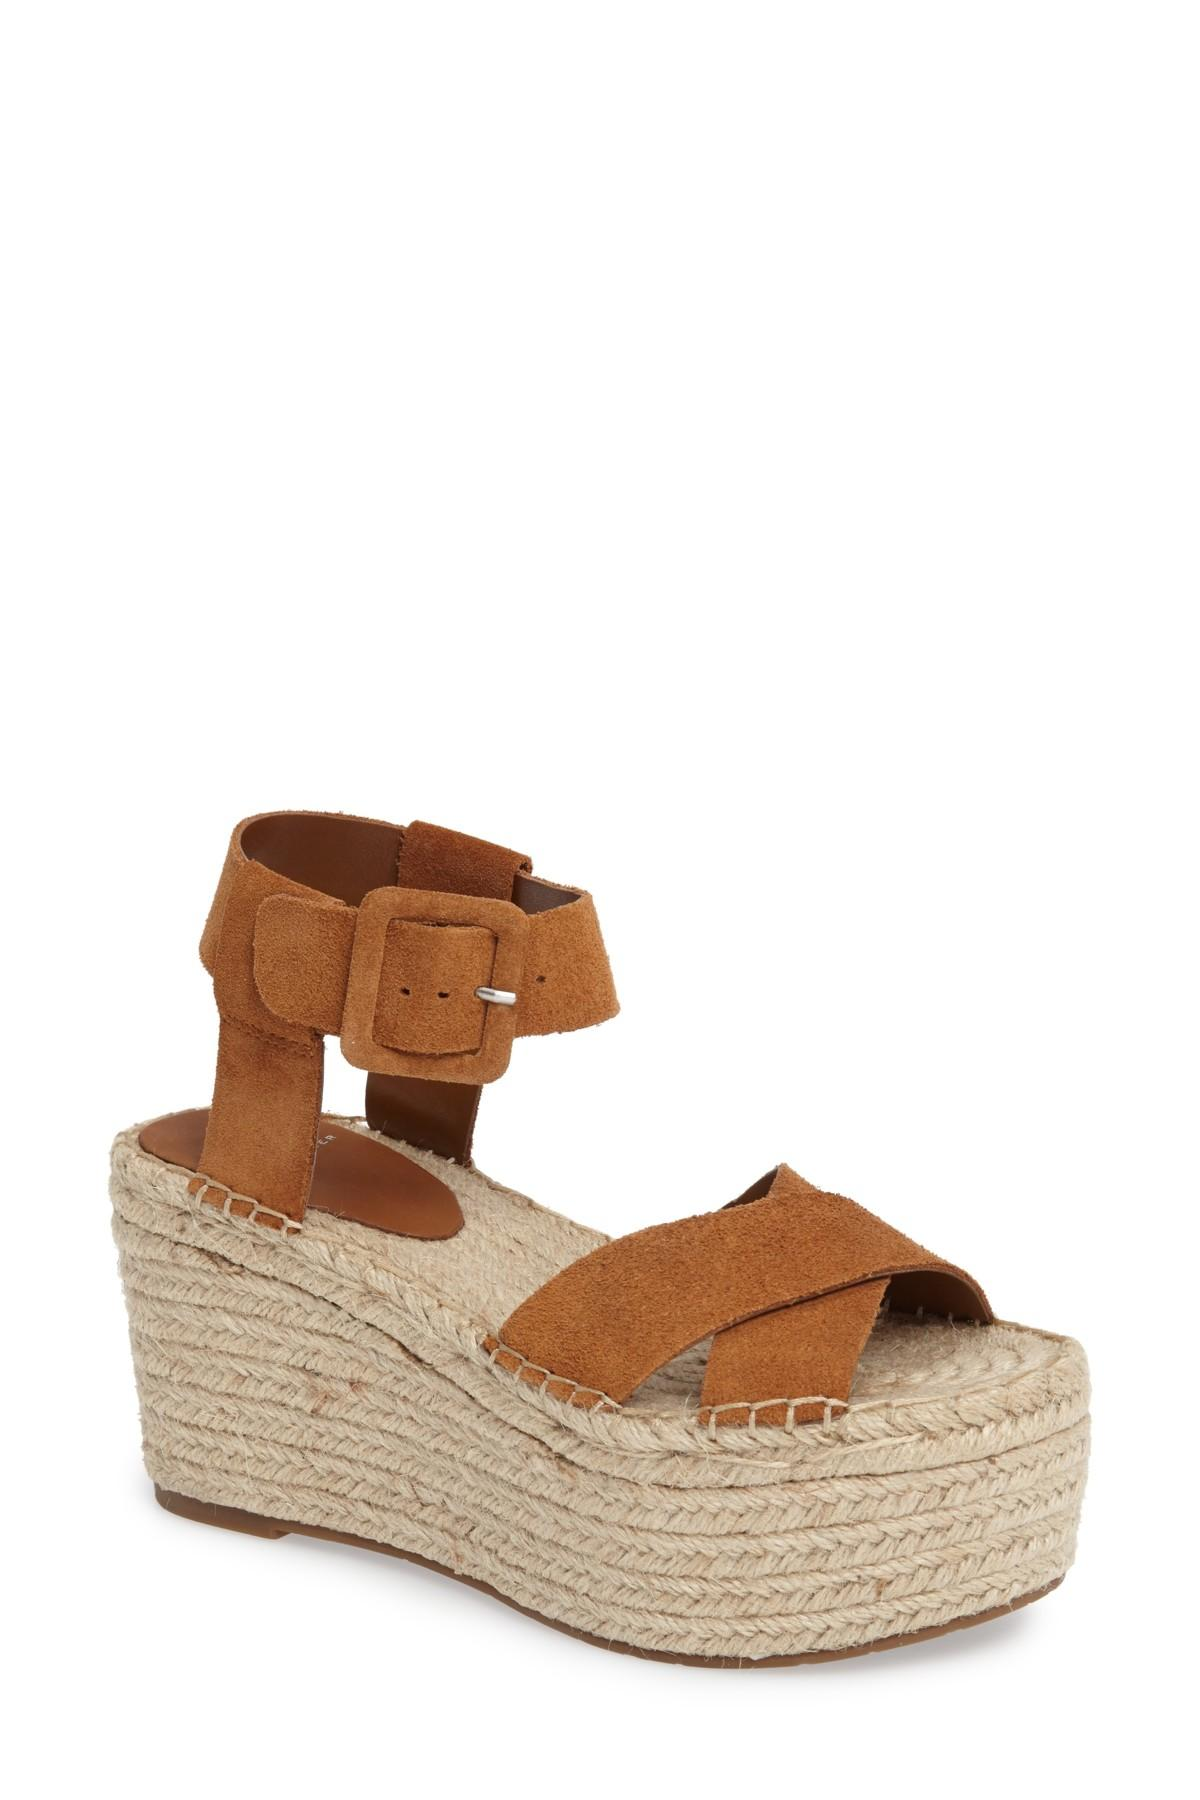 969d7700a12 Lyst - Marc Fisher  randall  Platform Wedge (women) in Brown